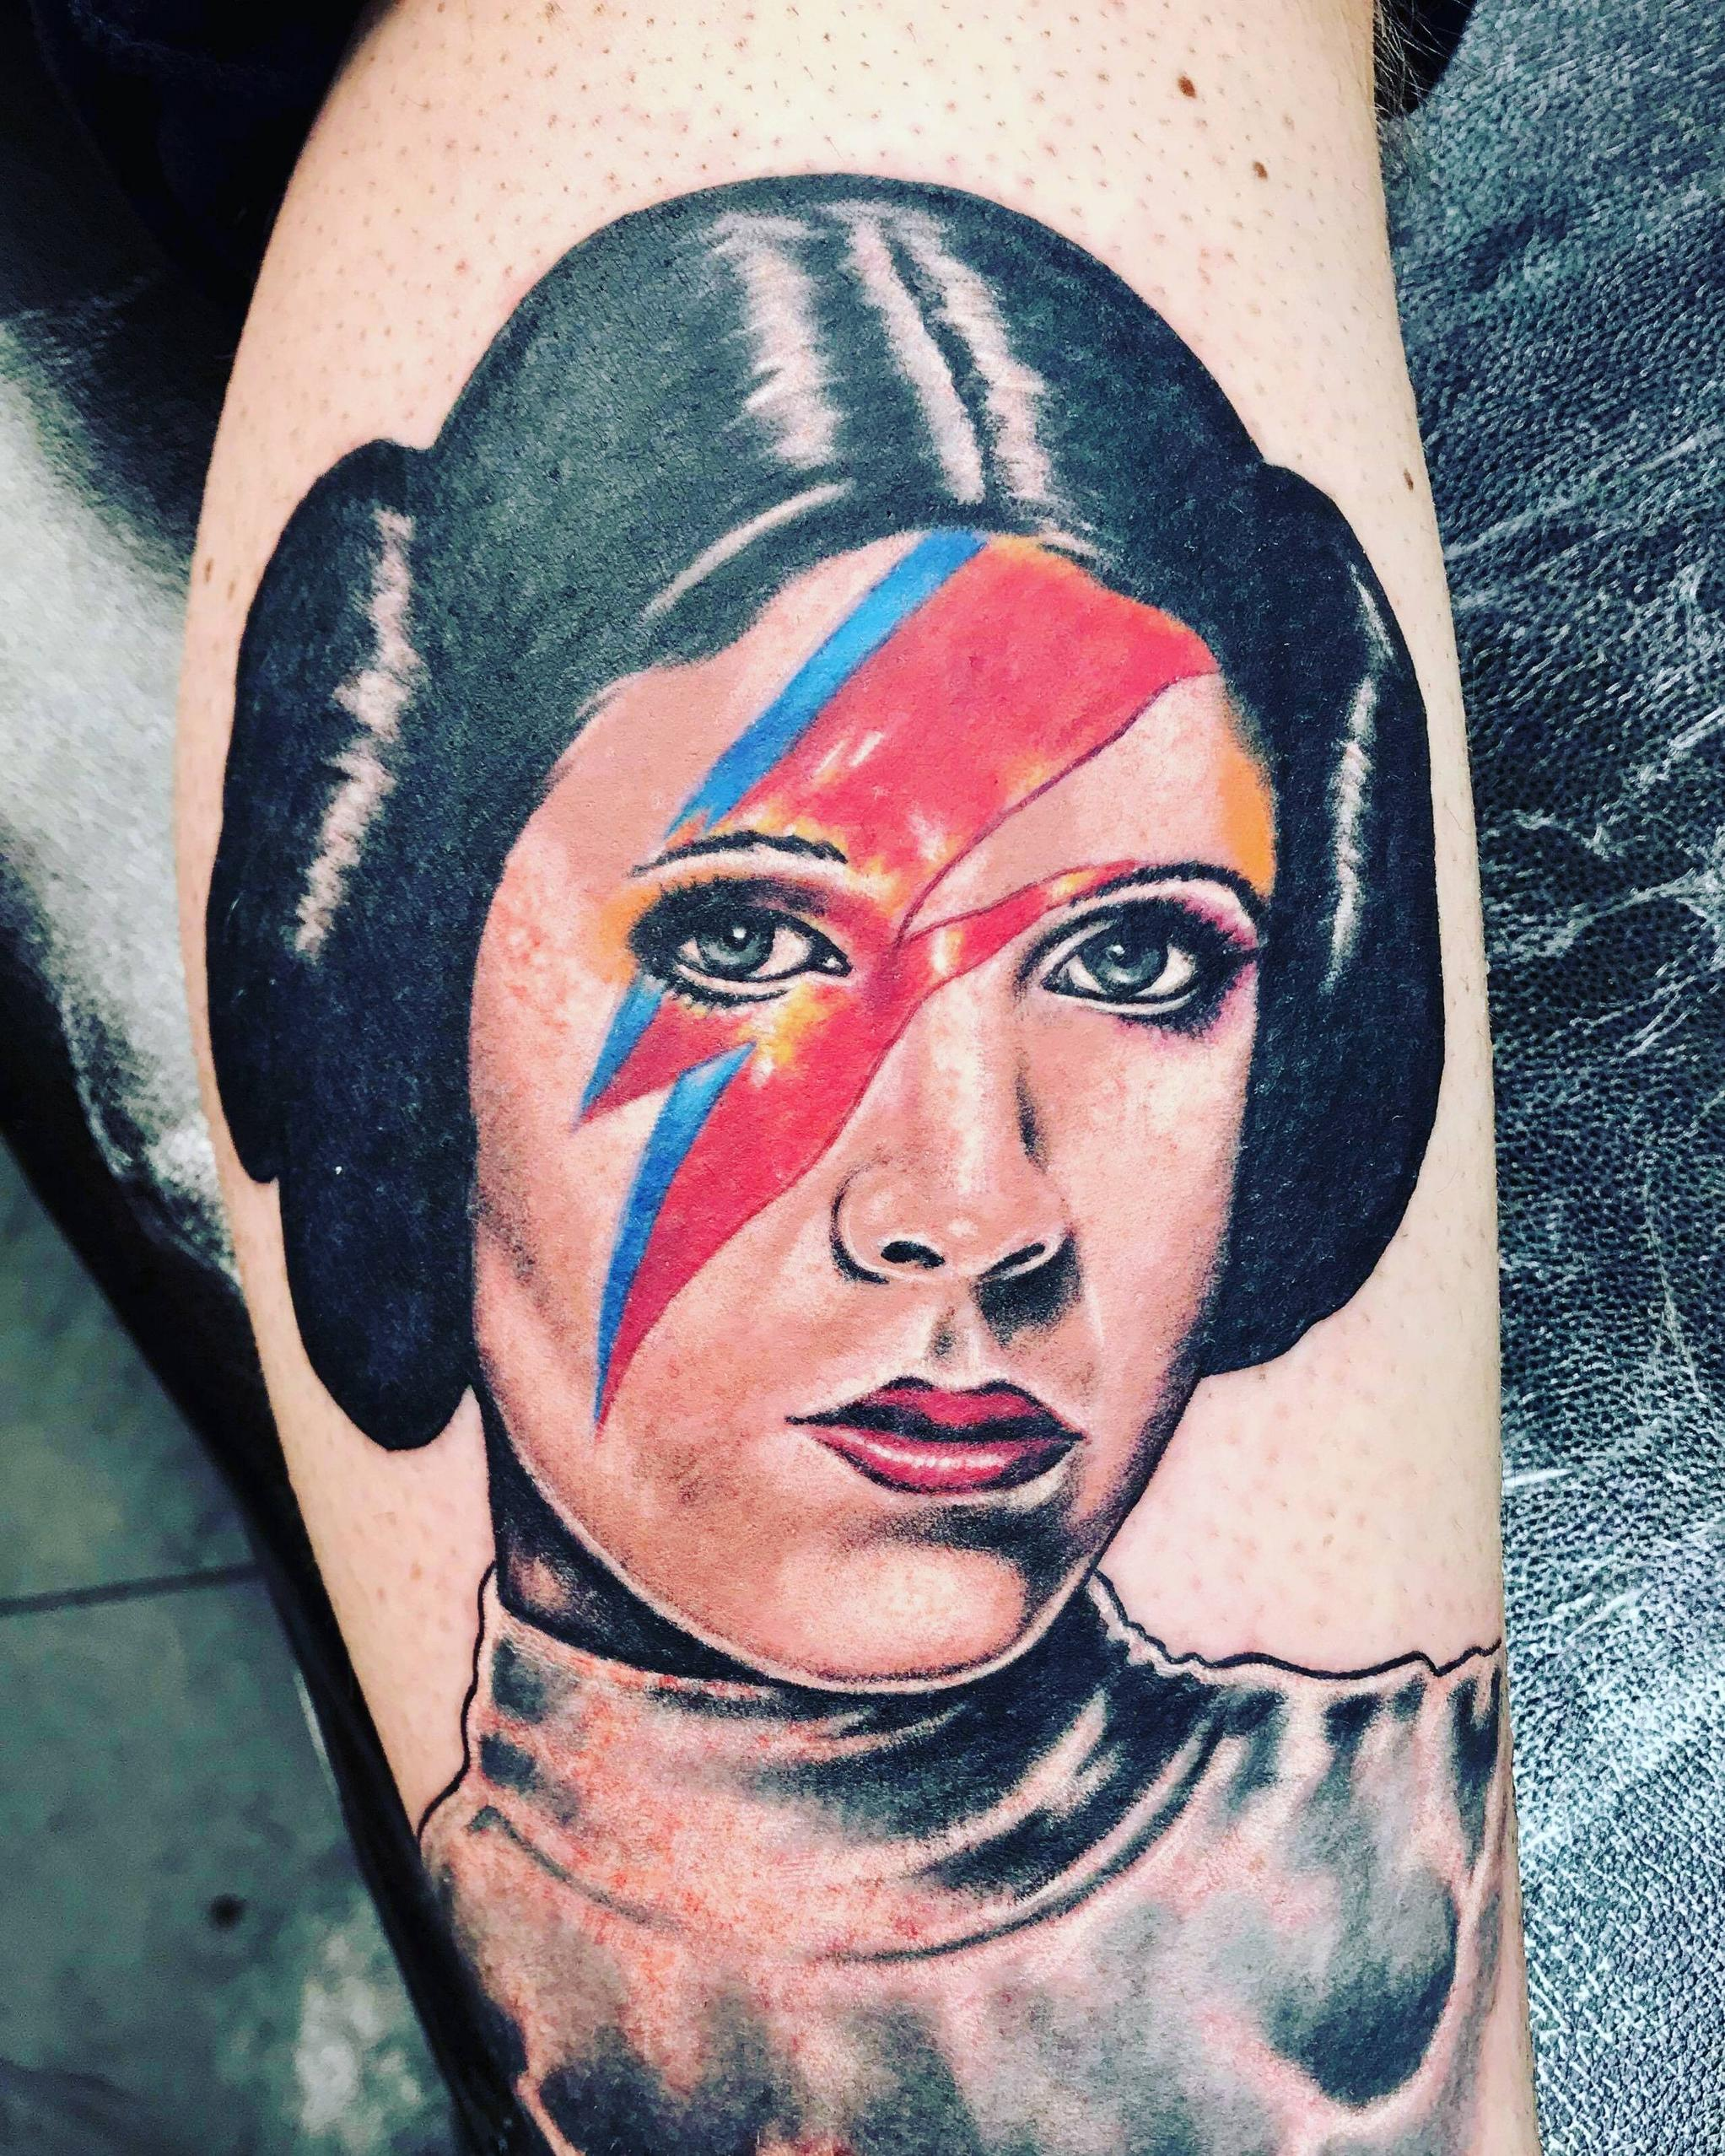 My first Star Wars tattoo! Our general, Rebel Rebel